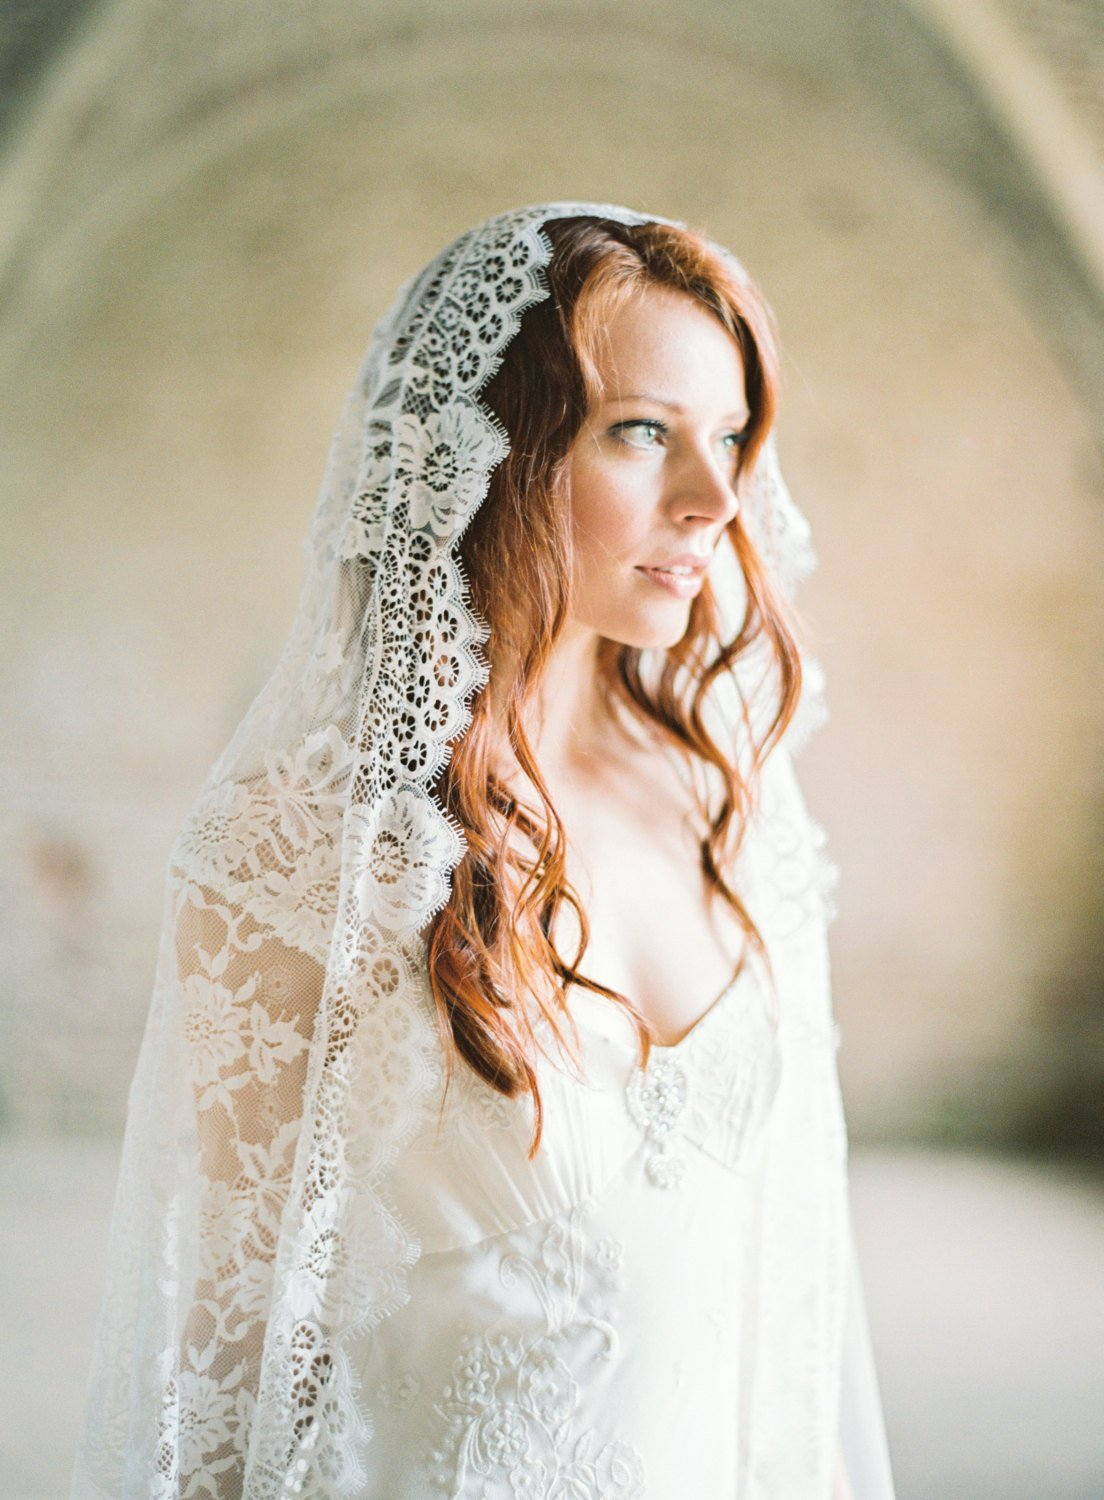 Cathedral Veil, Wedding Veil, Mantilla Veil, Bridal Veil.jpg